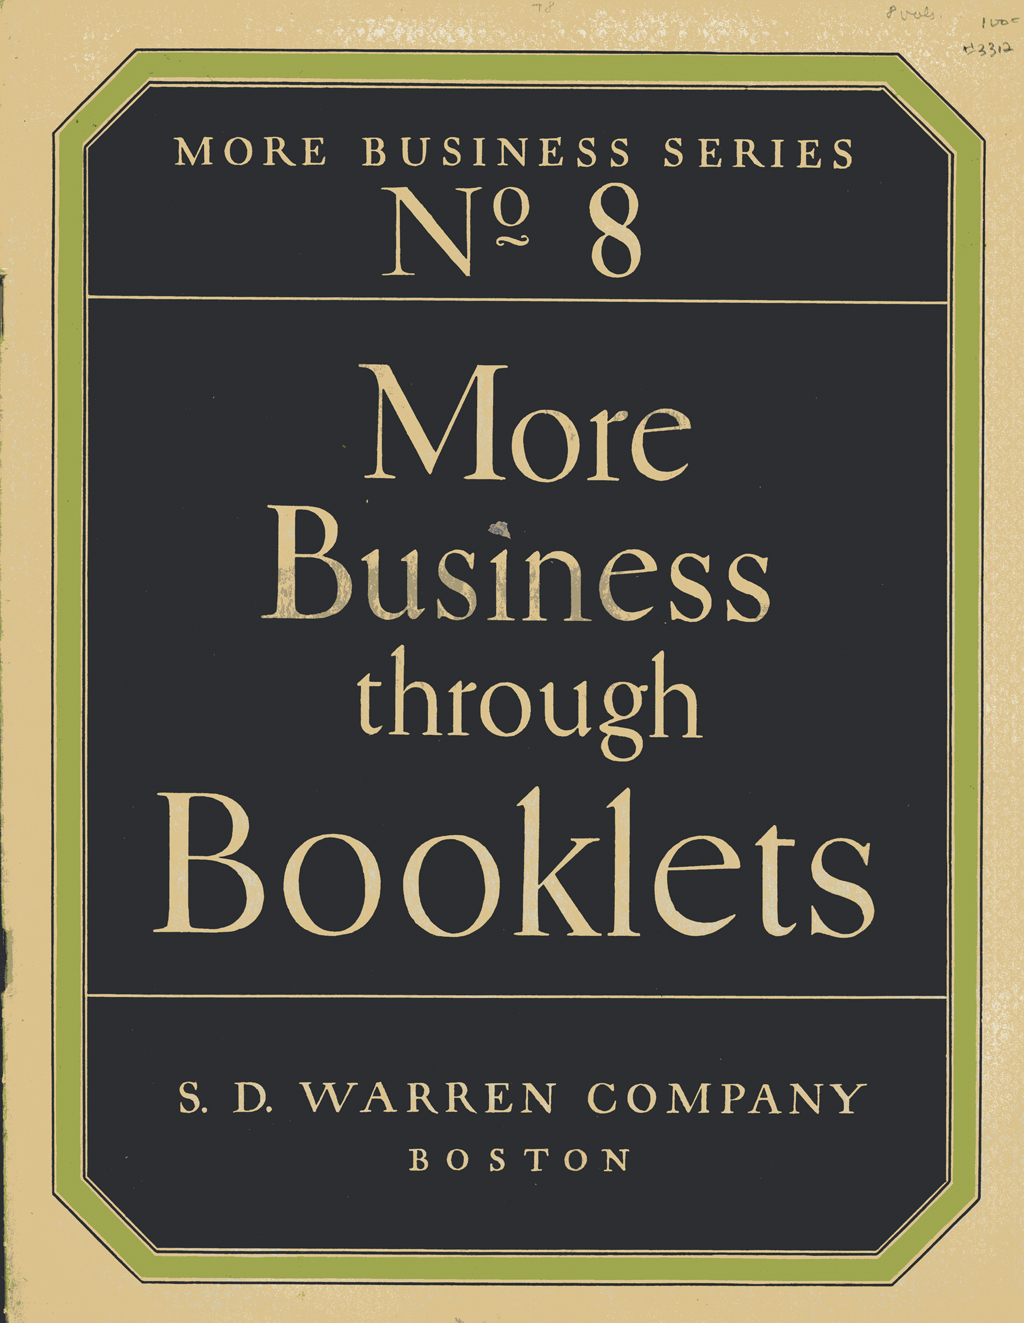 Cover of More Business through Booklets (S.D. Warren, 1922). Design and lettering by W.A. Dwiggins.